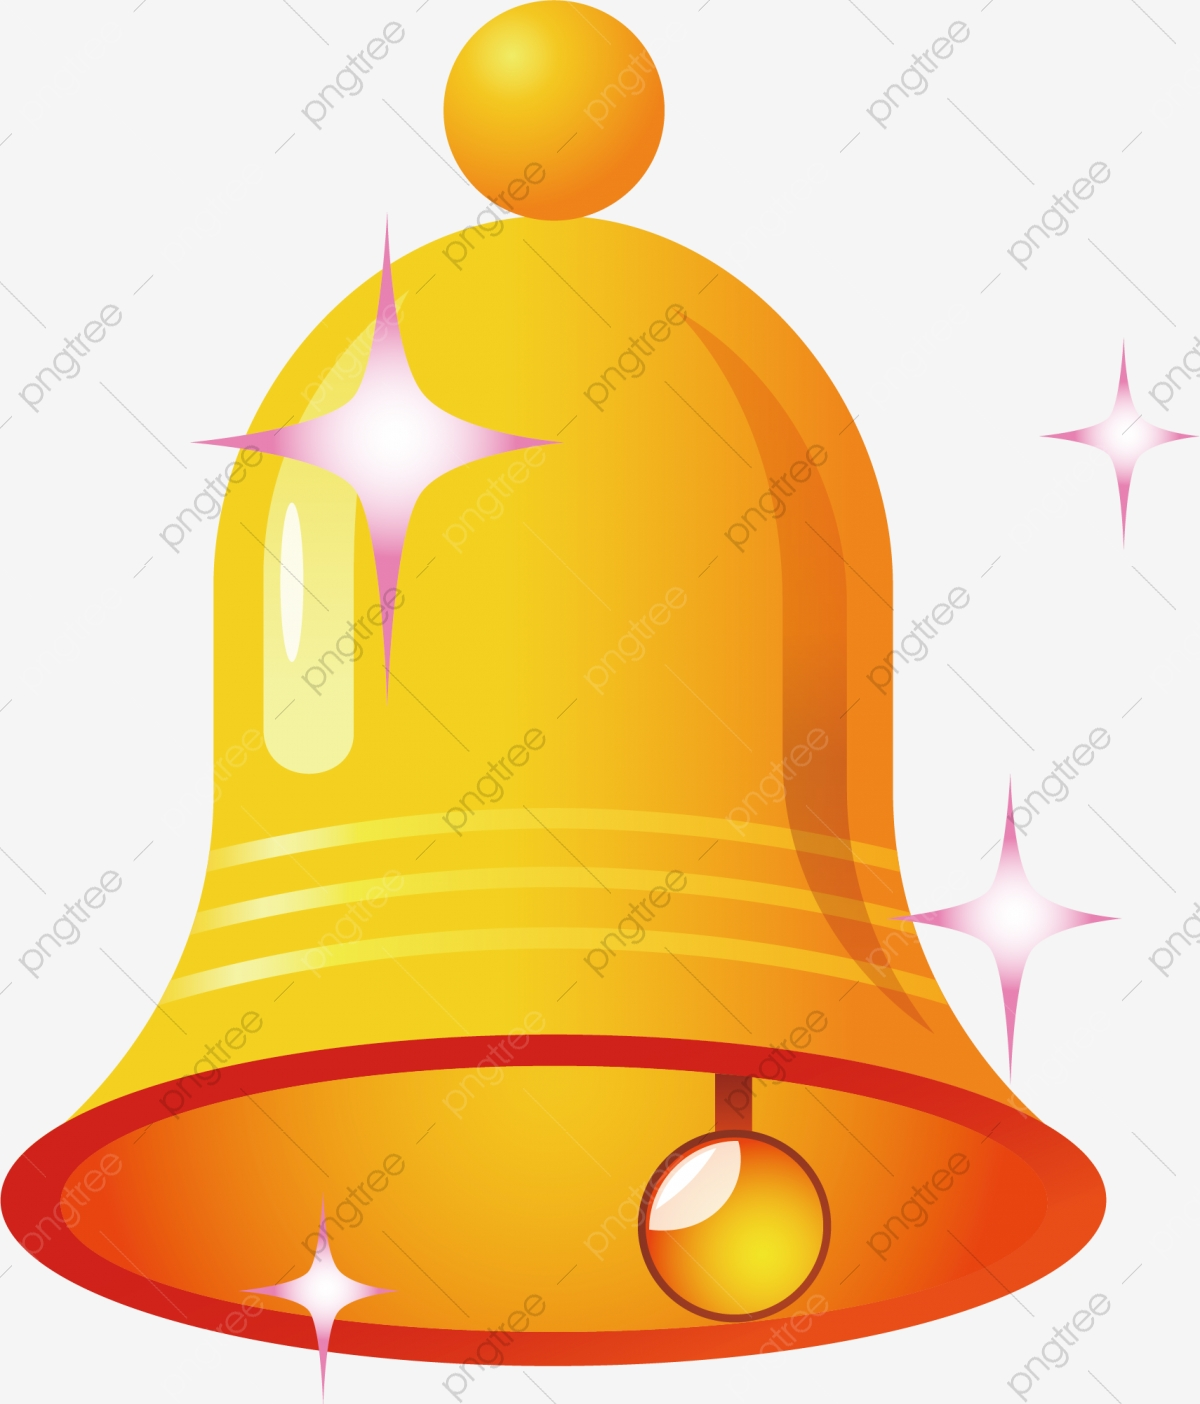 Bell Png Vector Element, Bells Vector, Gold, Flash PNG and Vector.